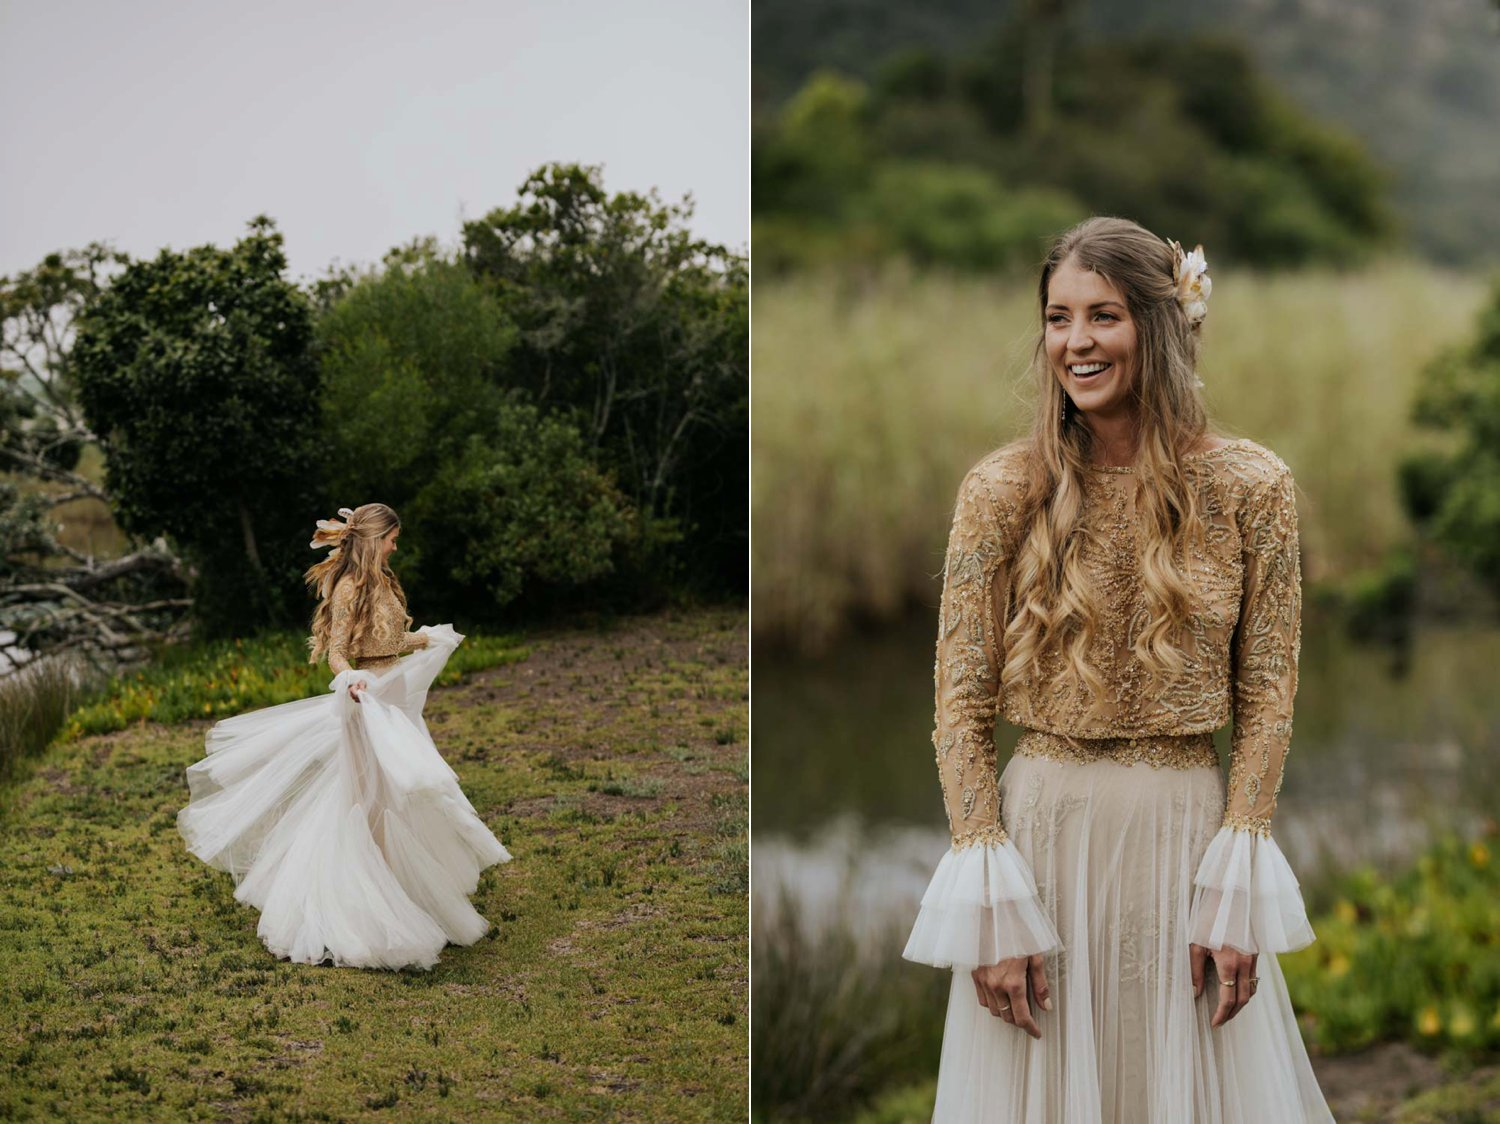 Gypsy bride with long curly blonde hair wears two piece gold and cream long sleeve wedding dress and feathers and plait in her hair spins at Emily Moon River Lodge